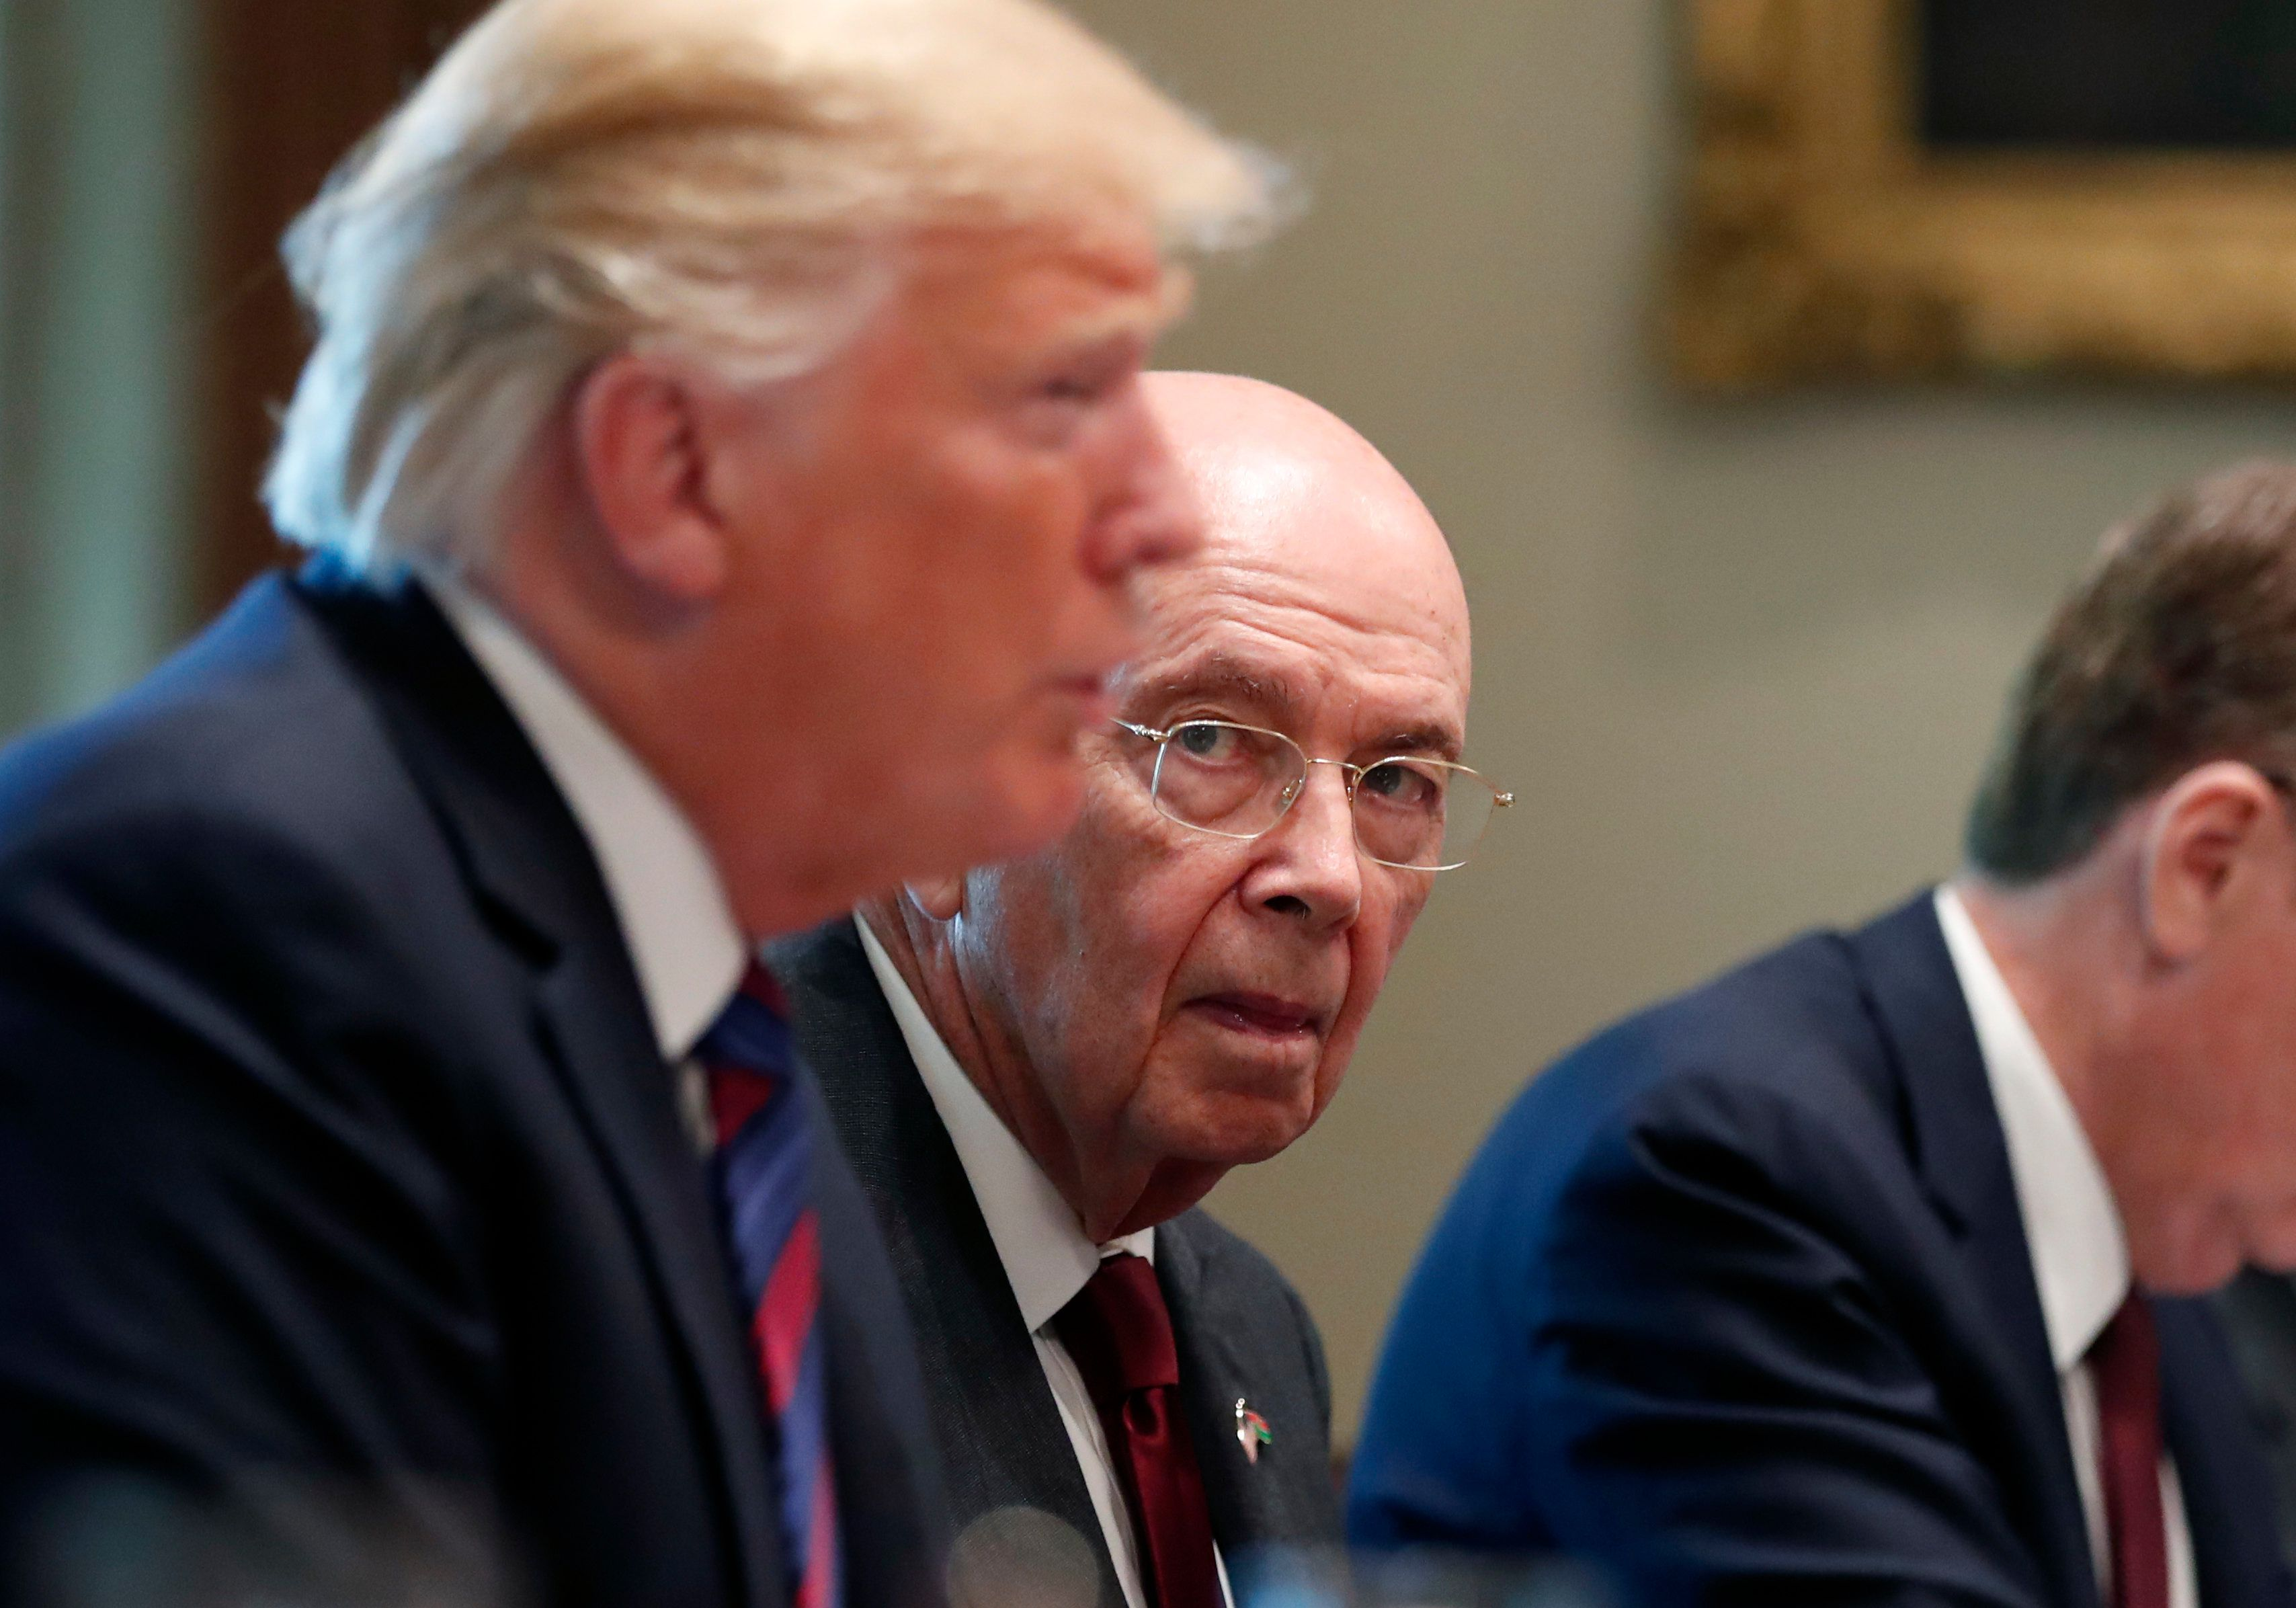 Commerce Secretary Wilbur Ross, right, listens as President Donald Trump speaks with Kenyan President Uhuru Kenyatta before a bilateral meeting in the Cabinet Room at the White House, Monday, Aug. 27, 2018, in Washington. (AP Photo/Alex Brandon)